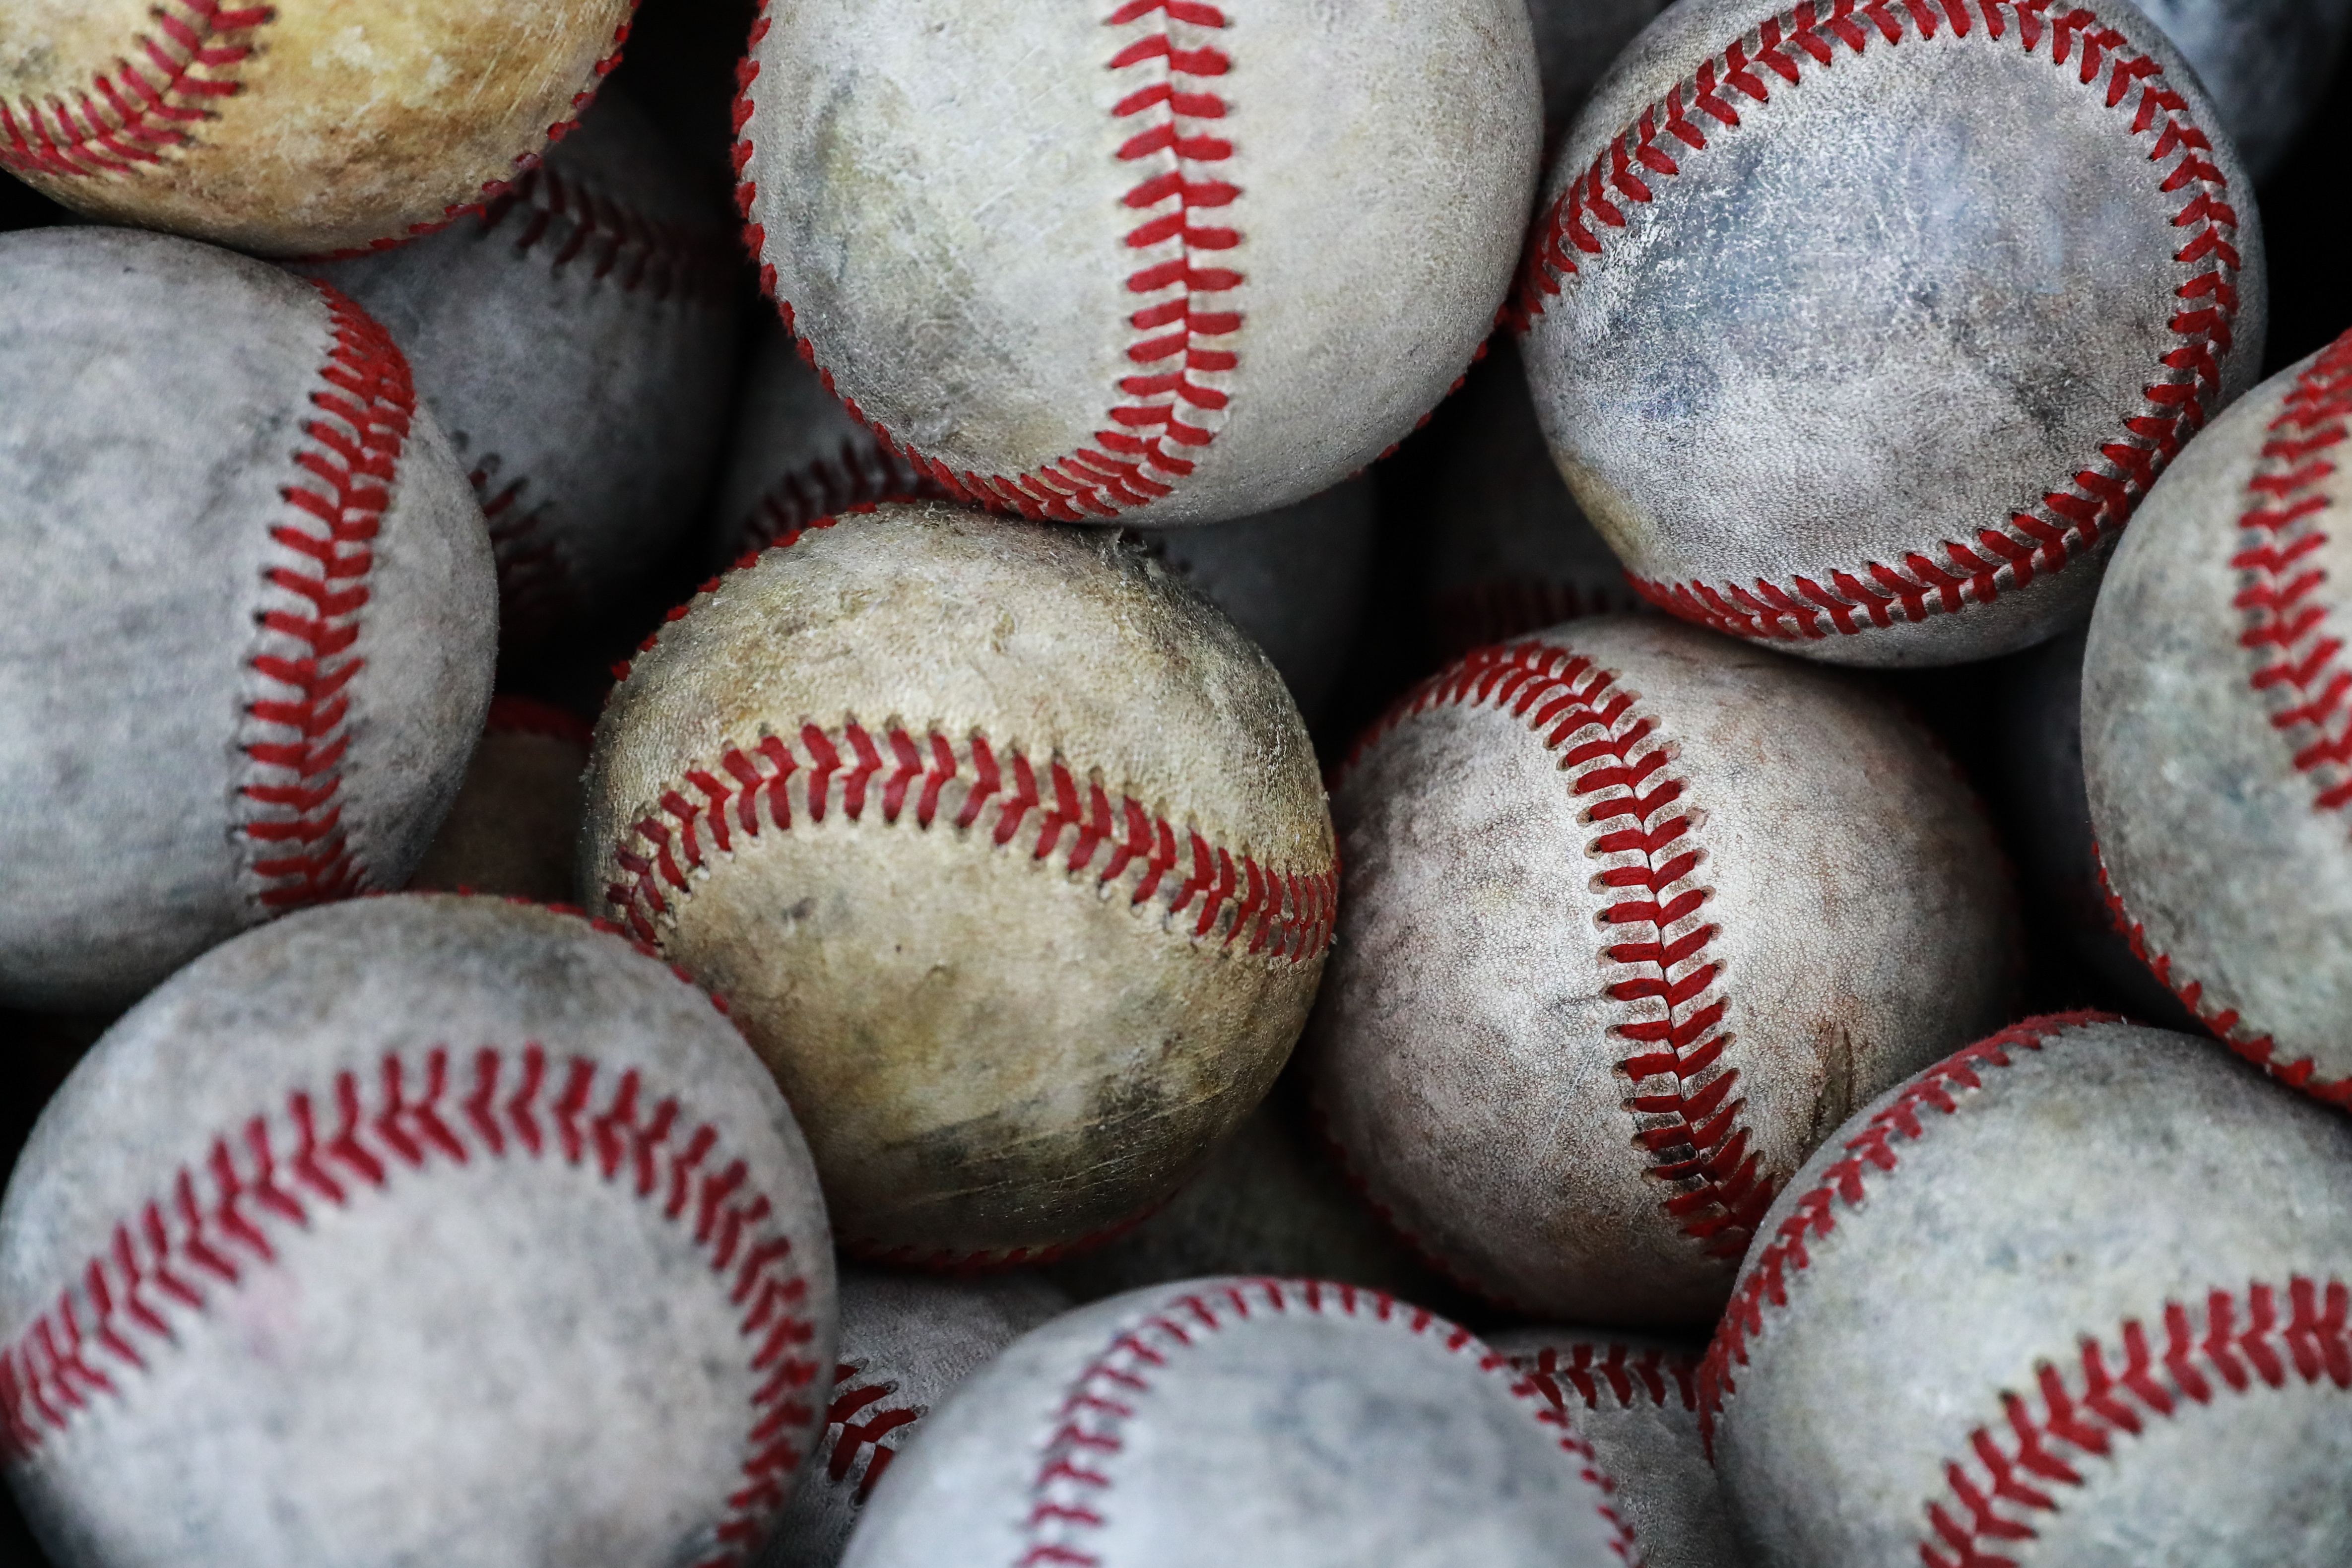 2020 Russian Baseball Championship in Moscow